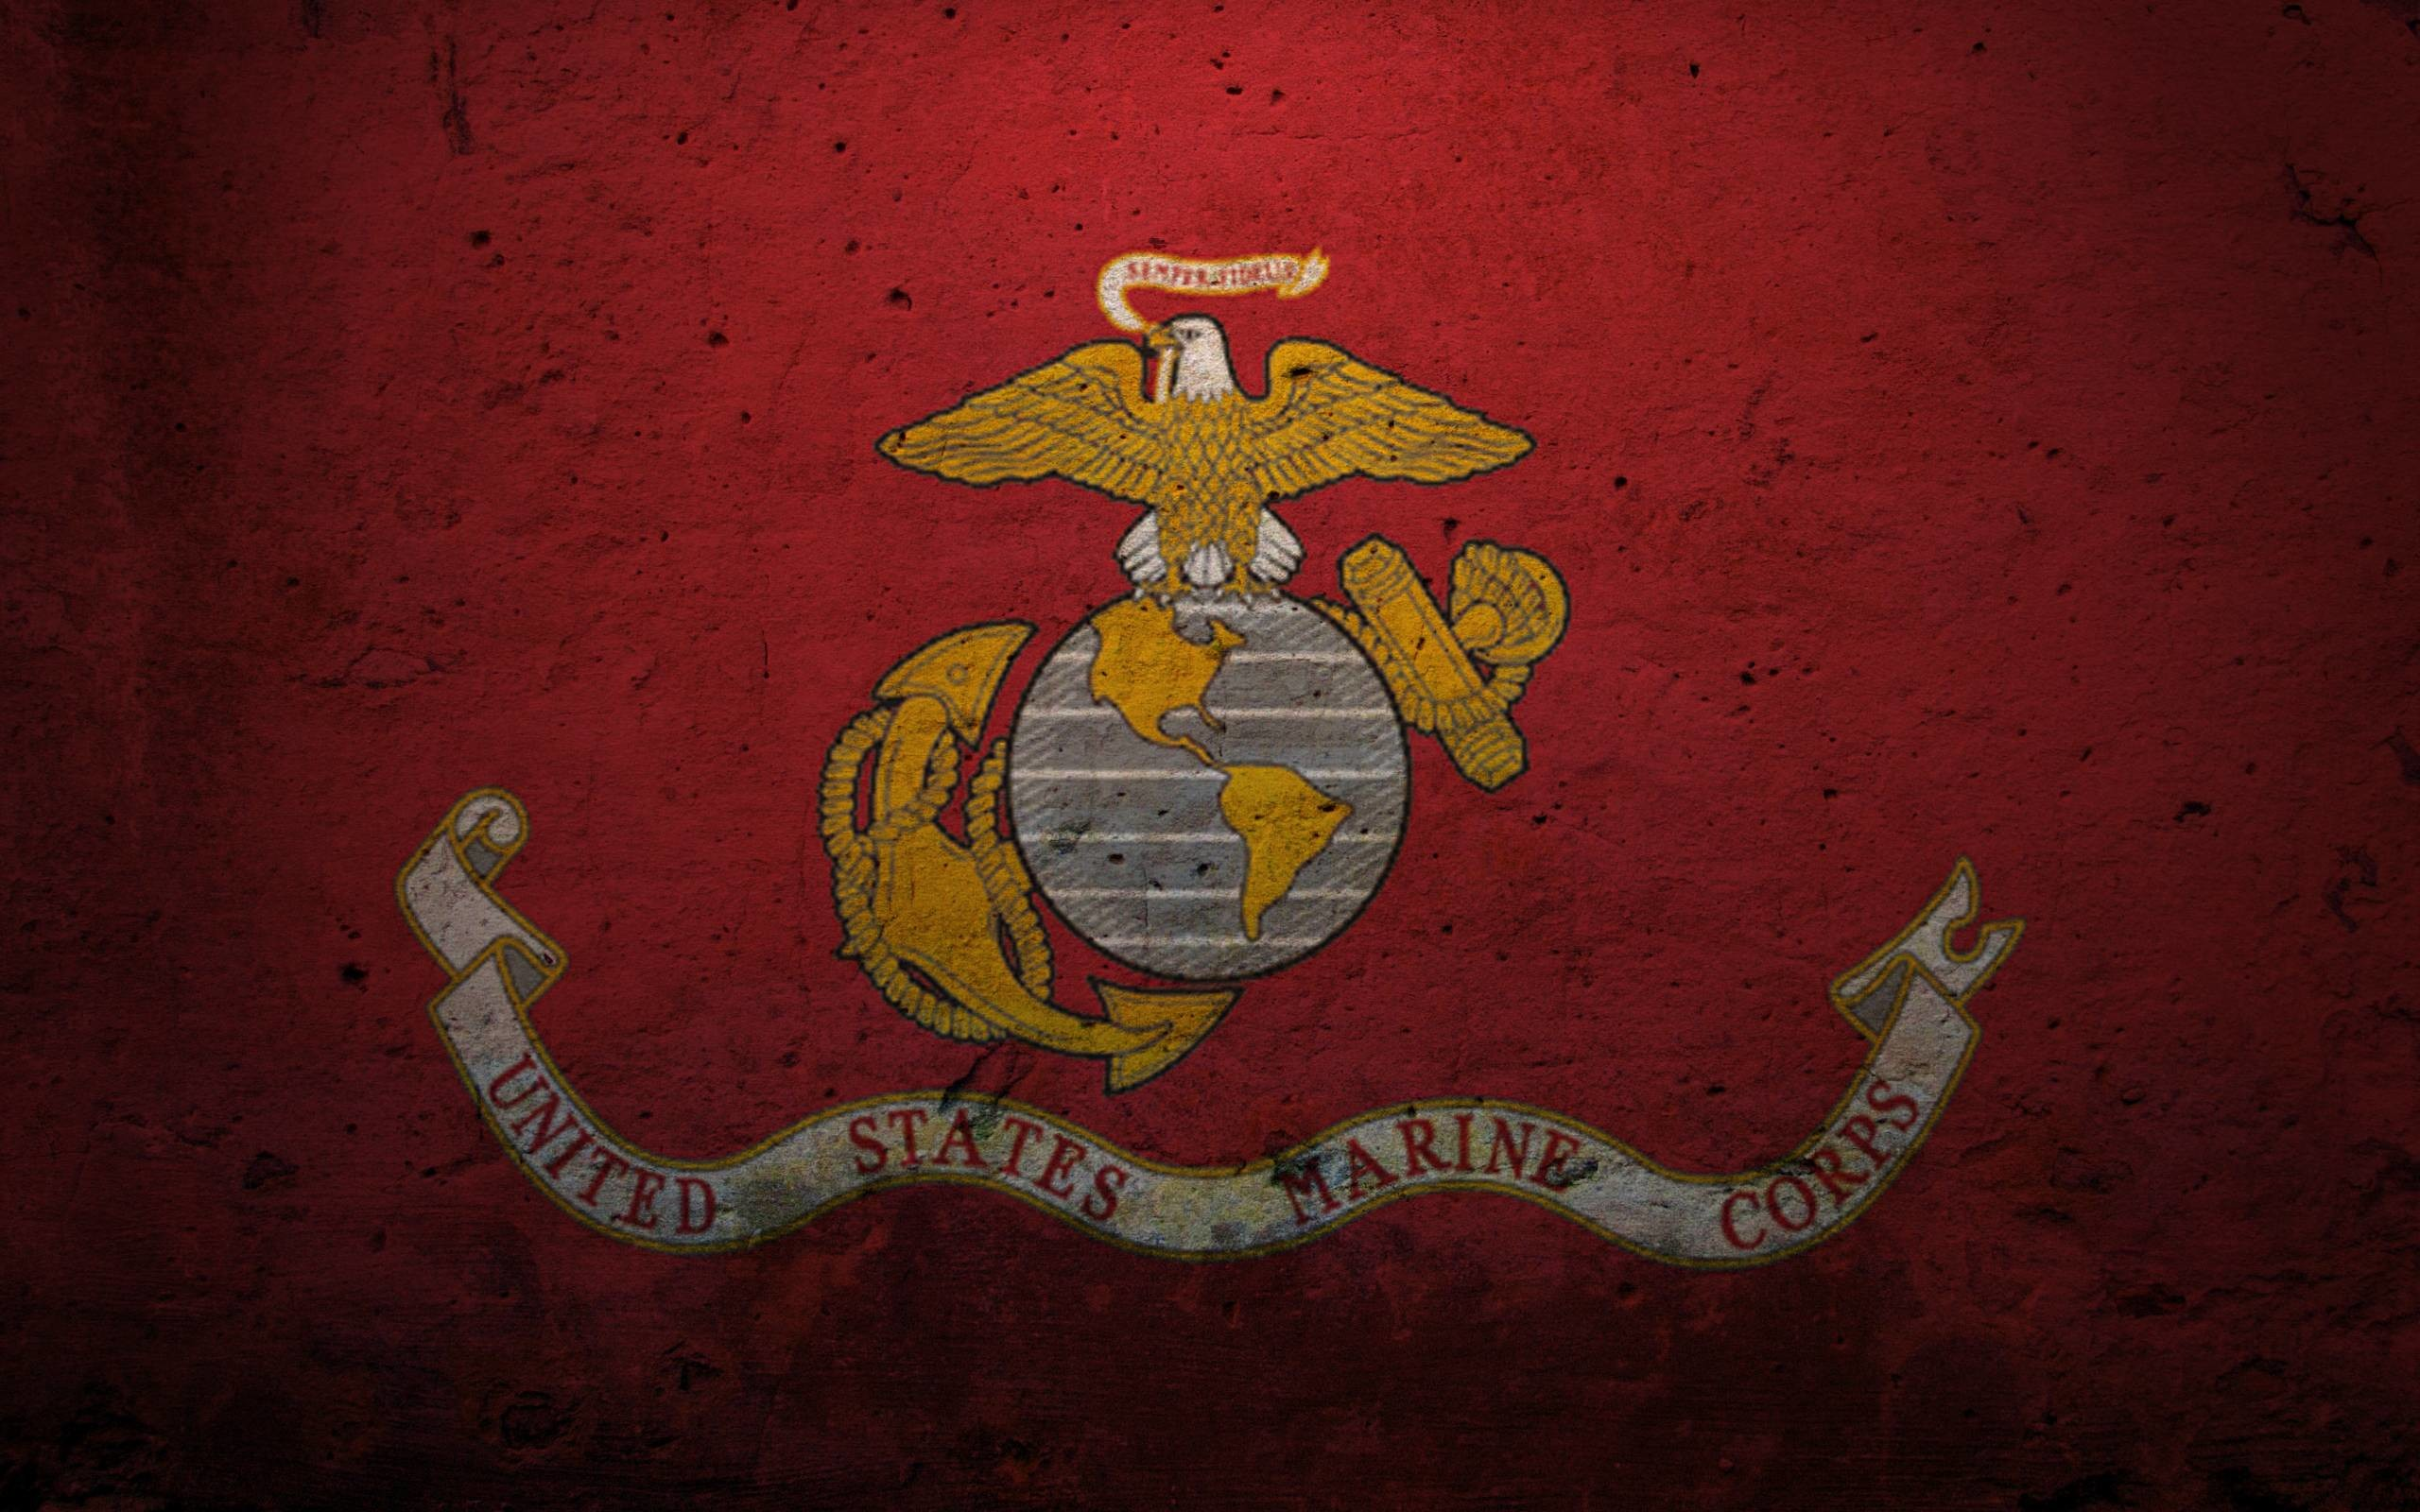 Usmc Wallpapers And Screensavers 65 Images